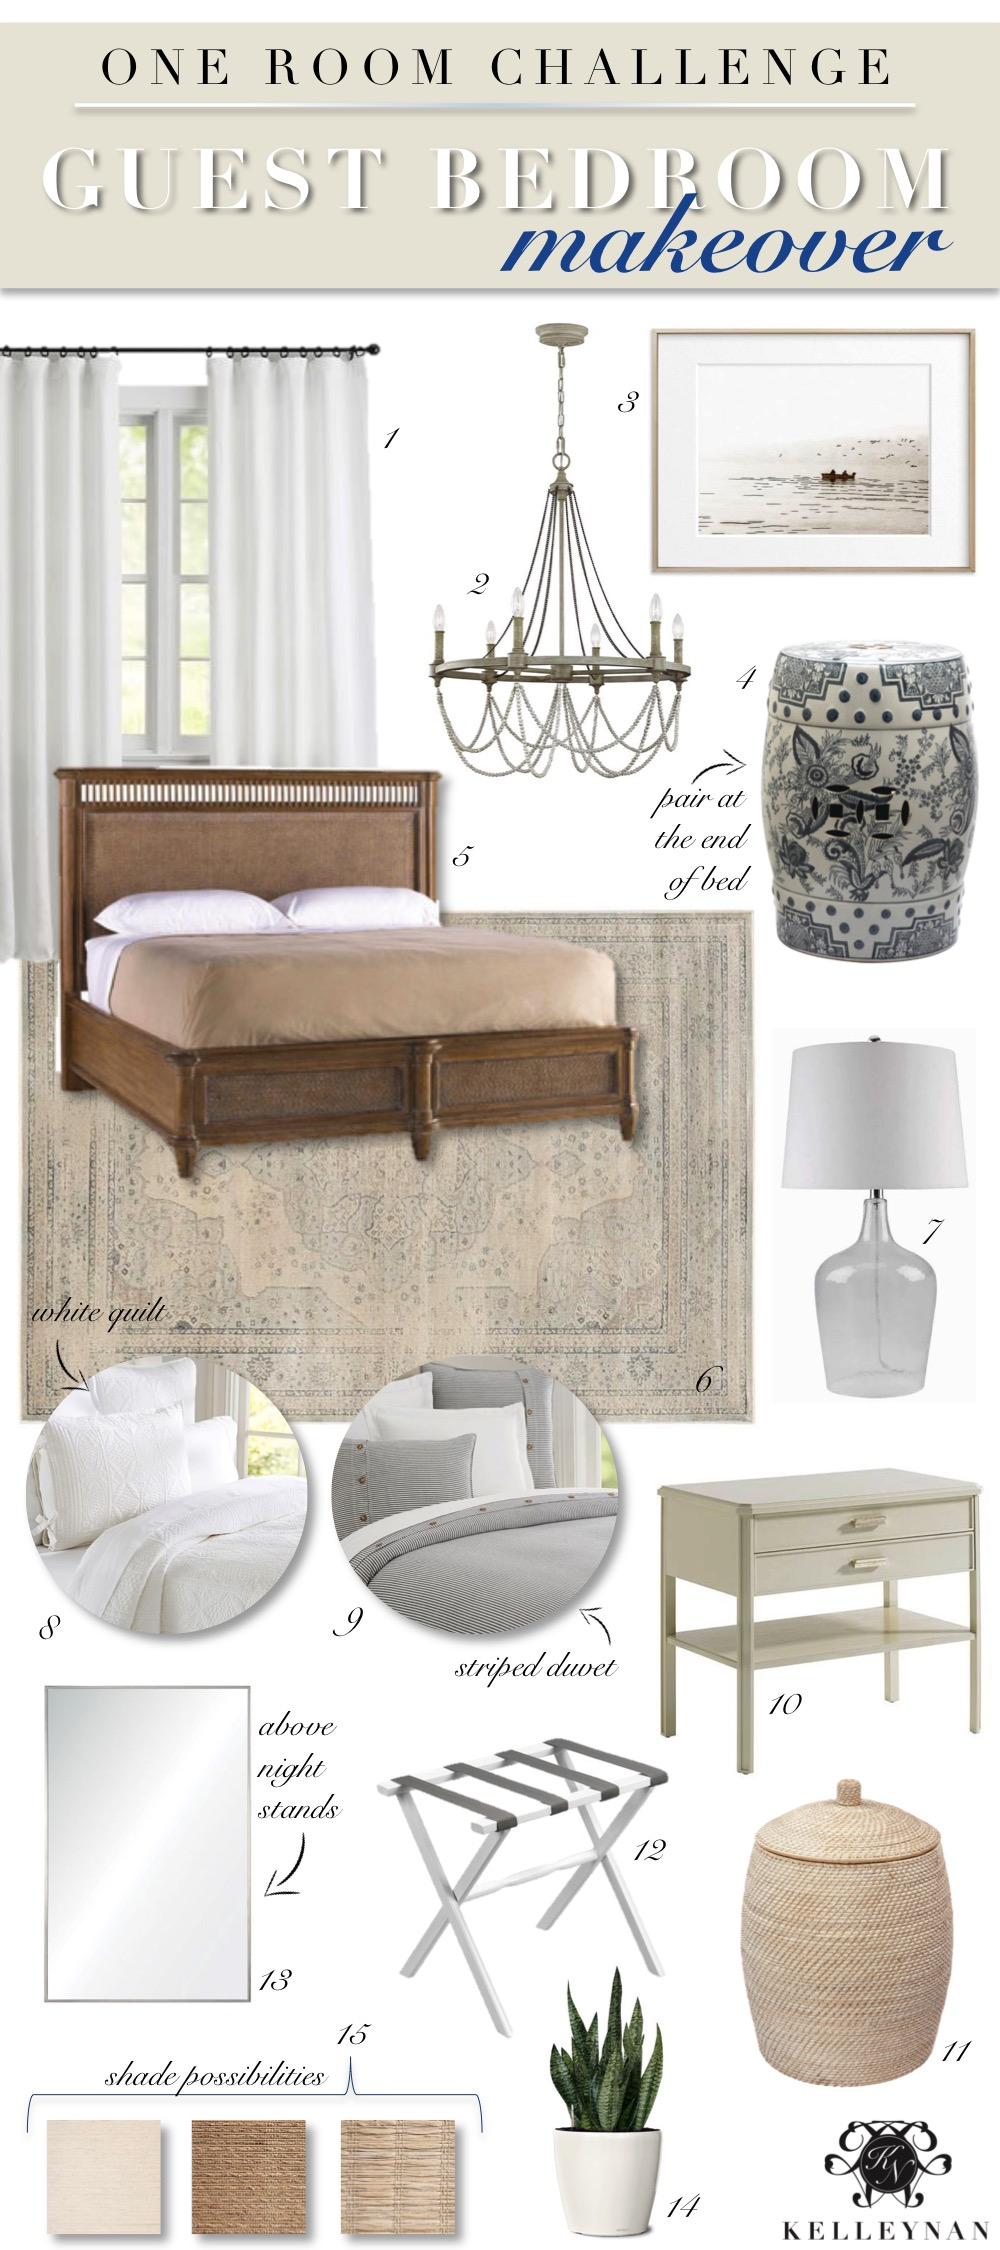 One Room Challenge Guest Bedroom Design Board with Cane Bed and Natural Elements